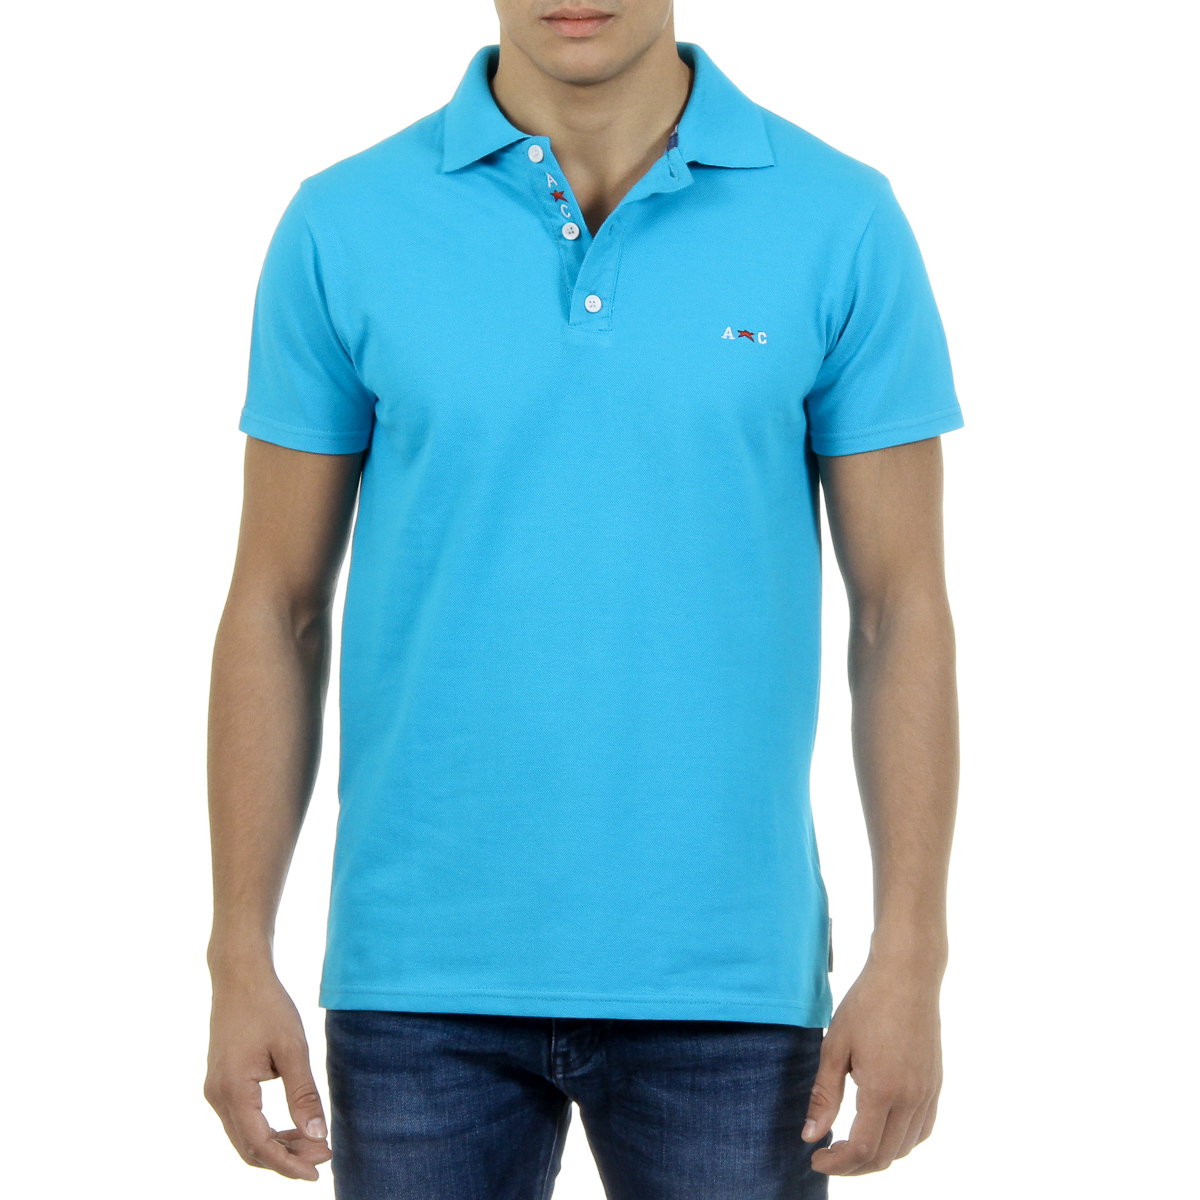 Primary image for Andrew Charles Mens Polo Short Sleeves Light Blue SEFU